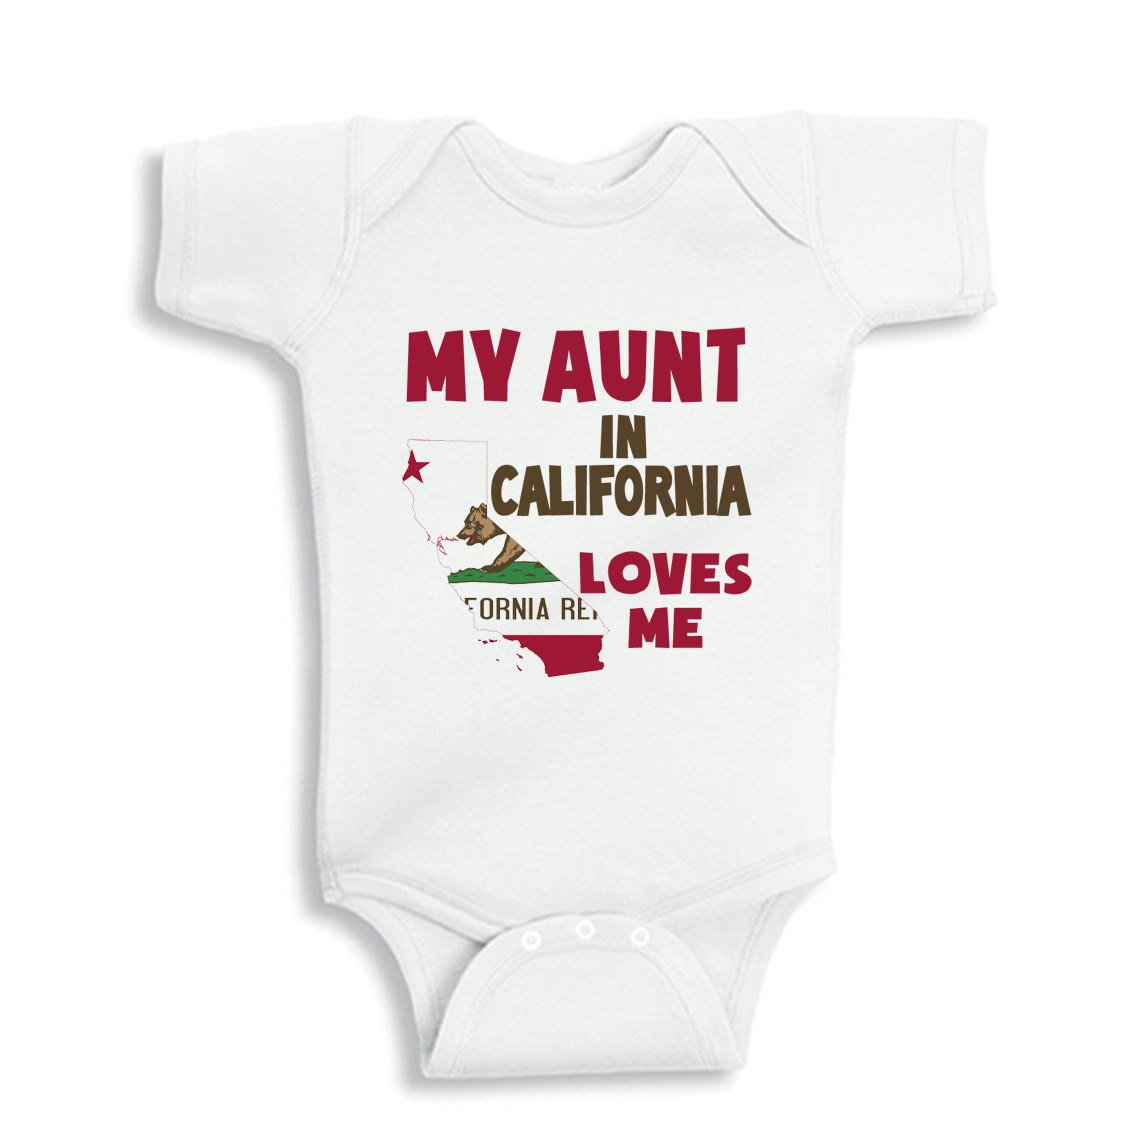 NanyCrafts Baby's My Aunt in CALIFORNIA Loves me baby Bodysuit 12M White